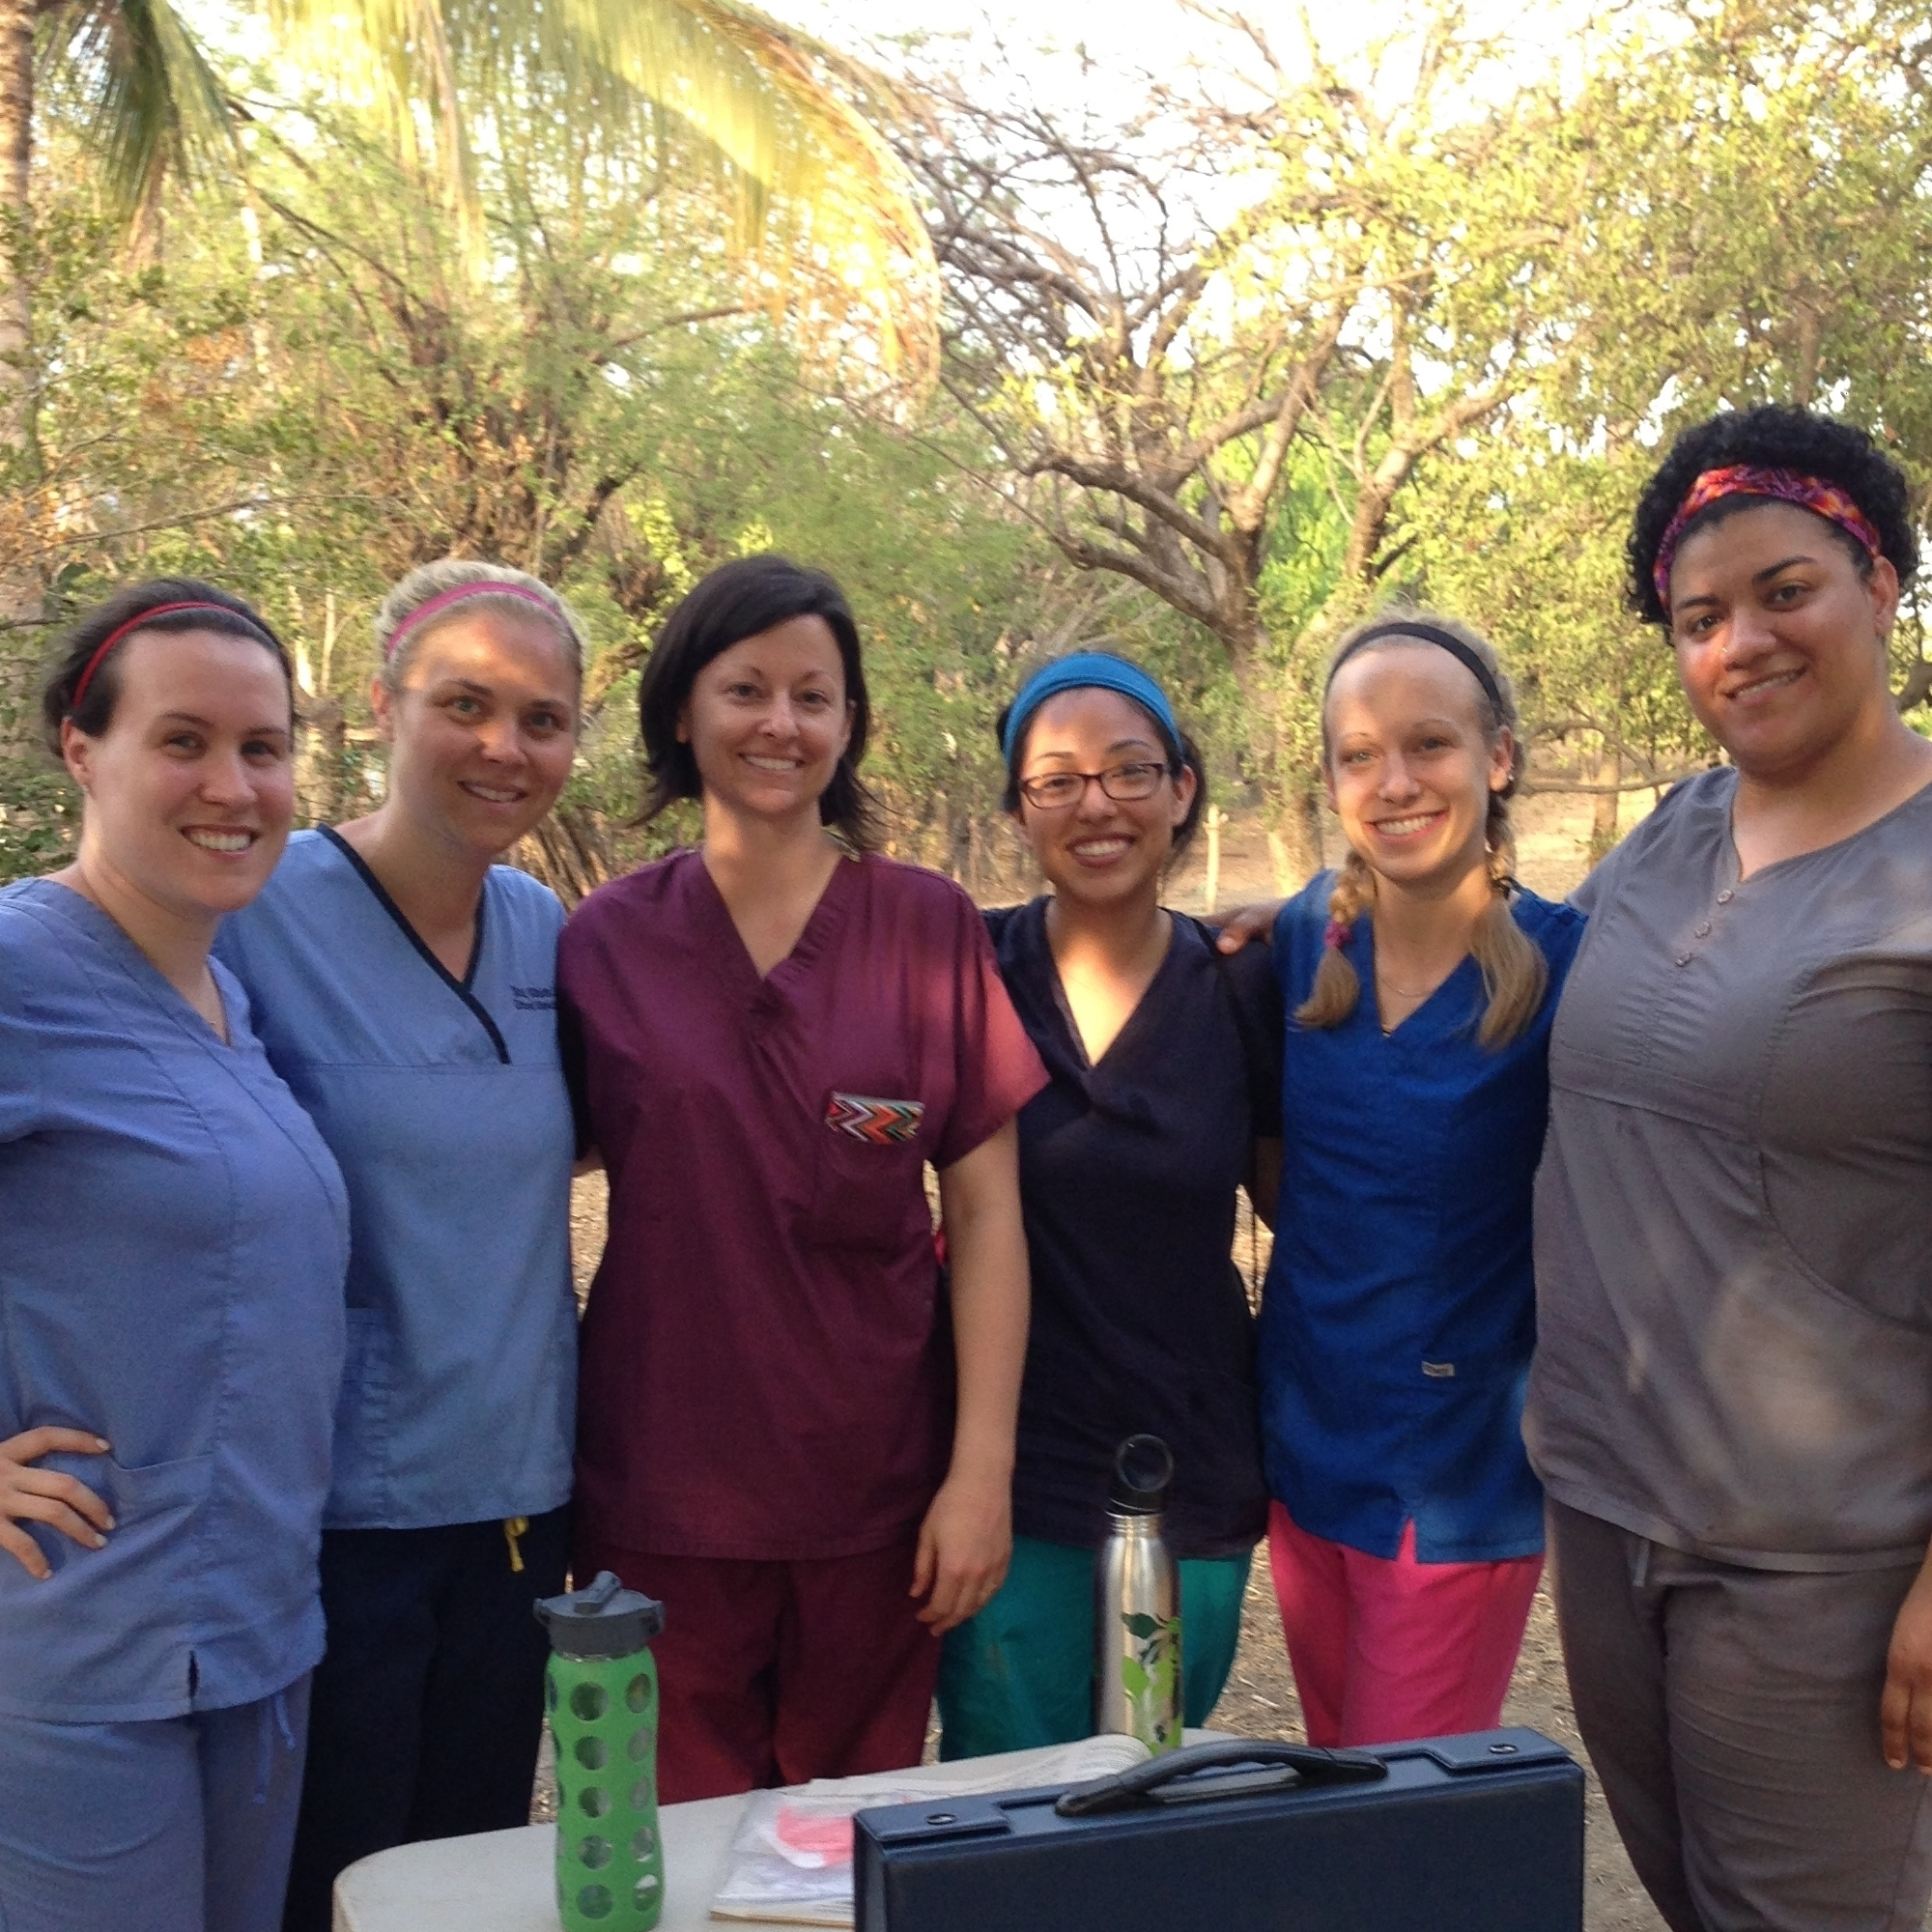 Pictured second from the left in Nicaragua in the Spring of 2013 with students from the National University of Health Sciences.